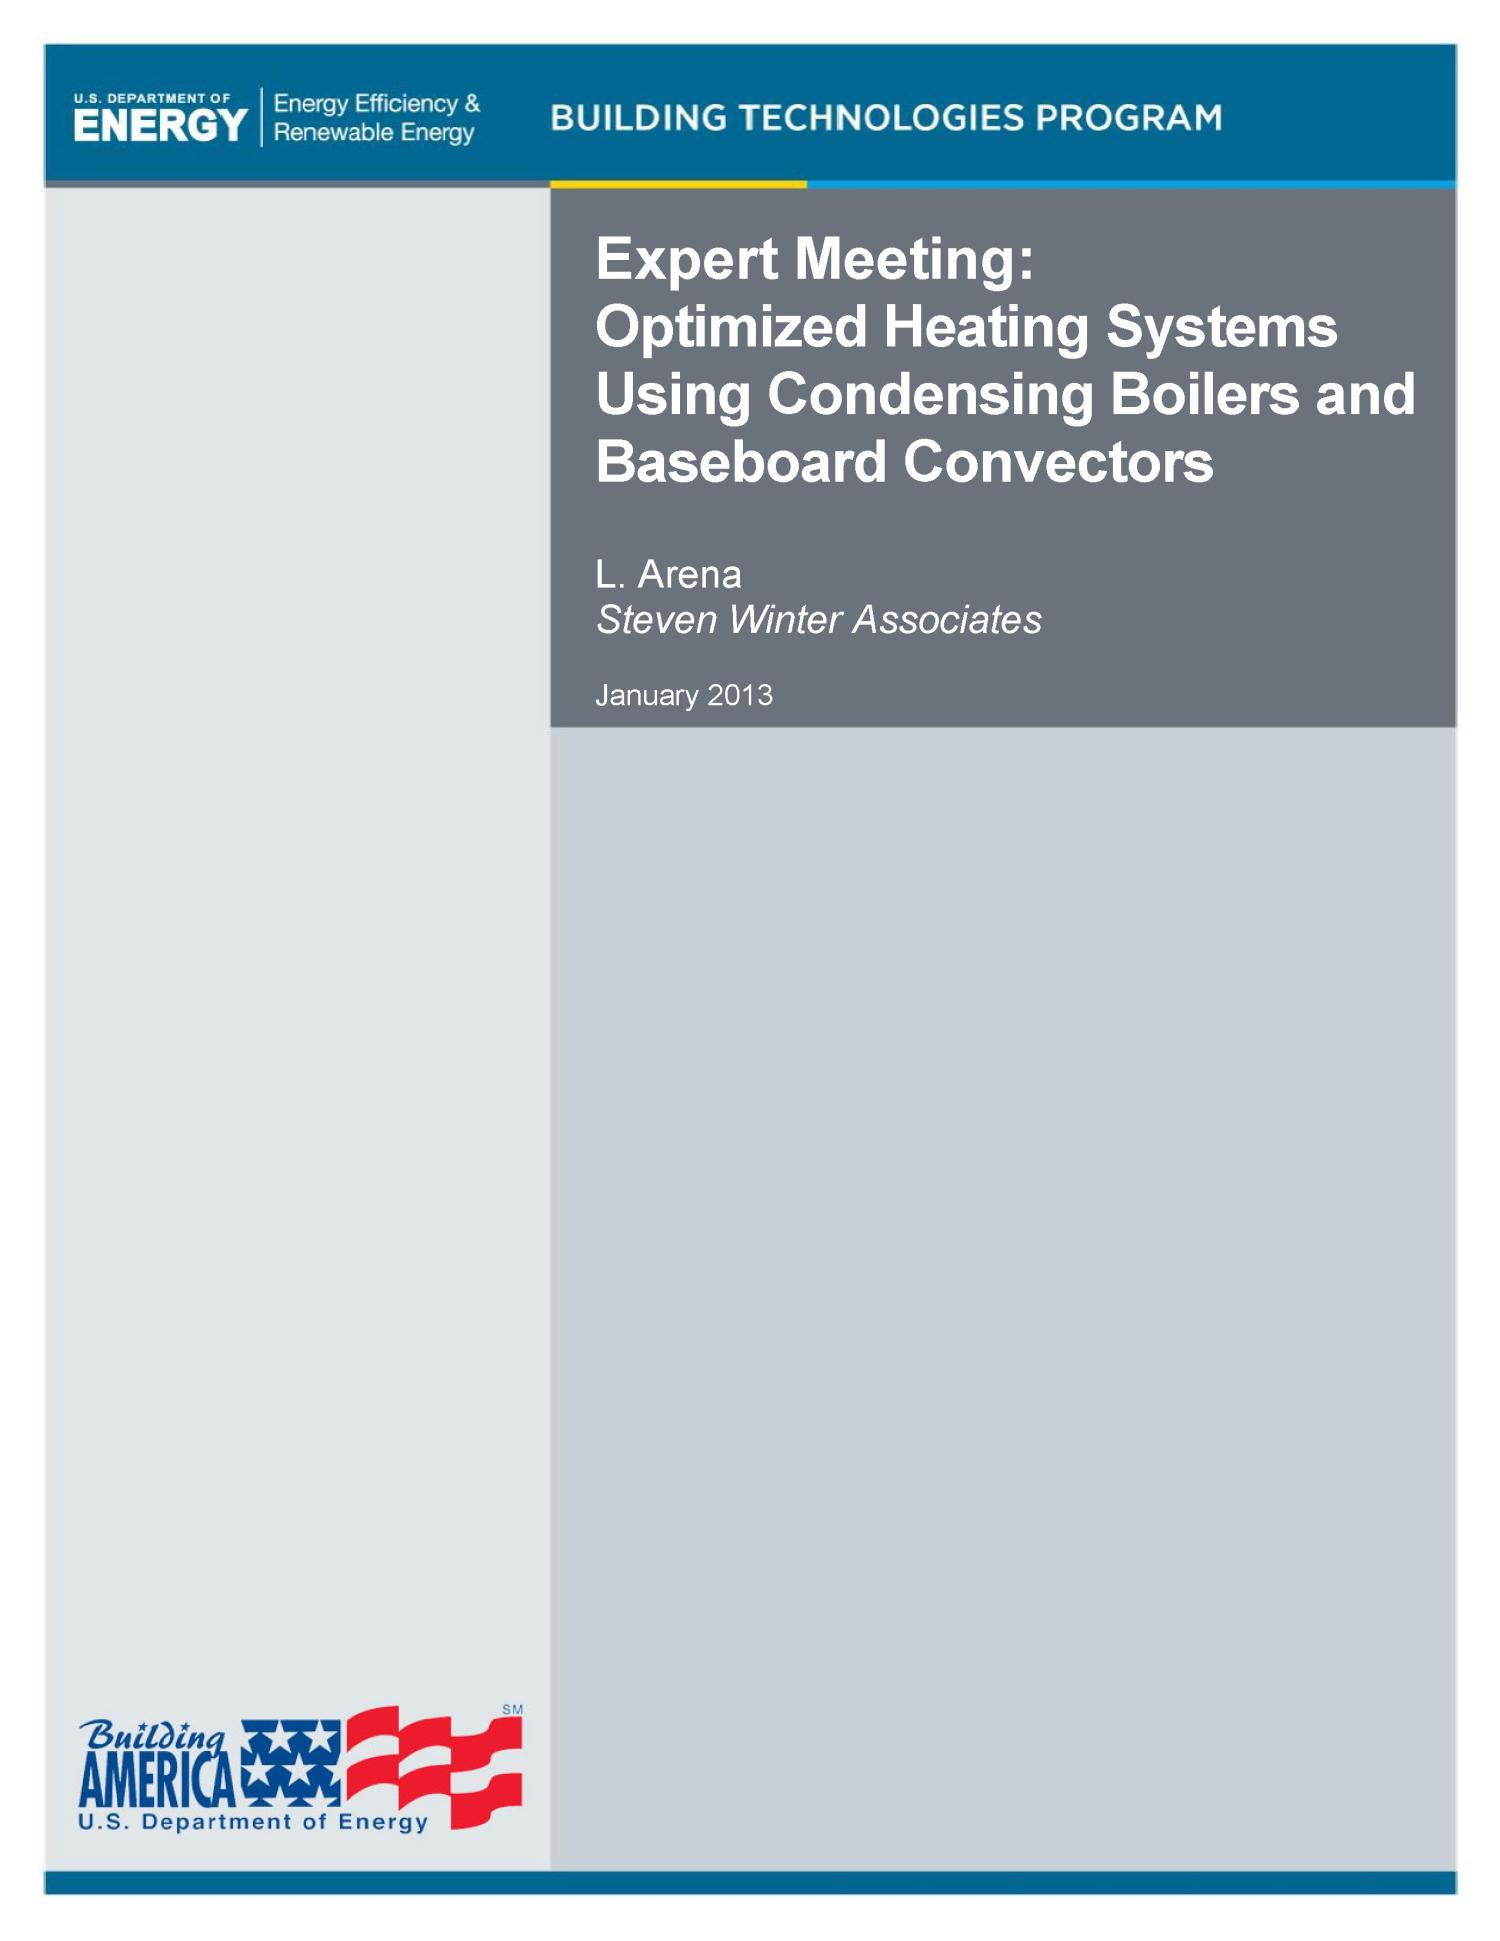 Expert Meeting: Optimized Heating Systems Using Condensing Boilers ...